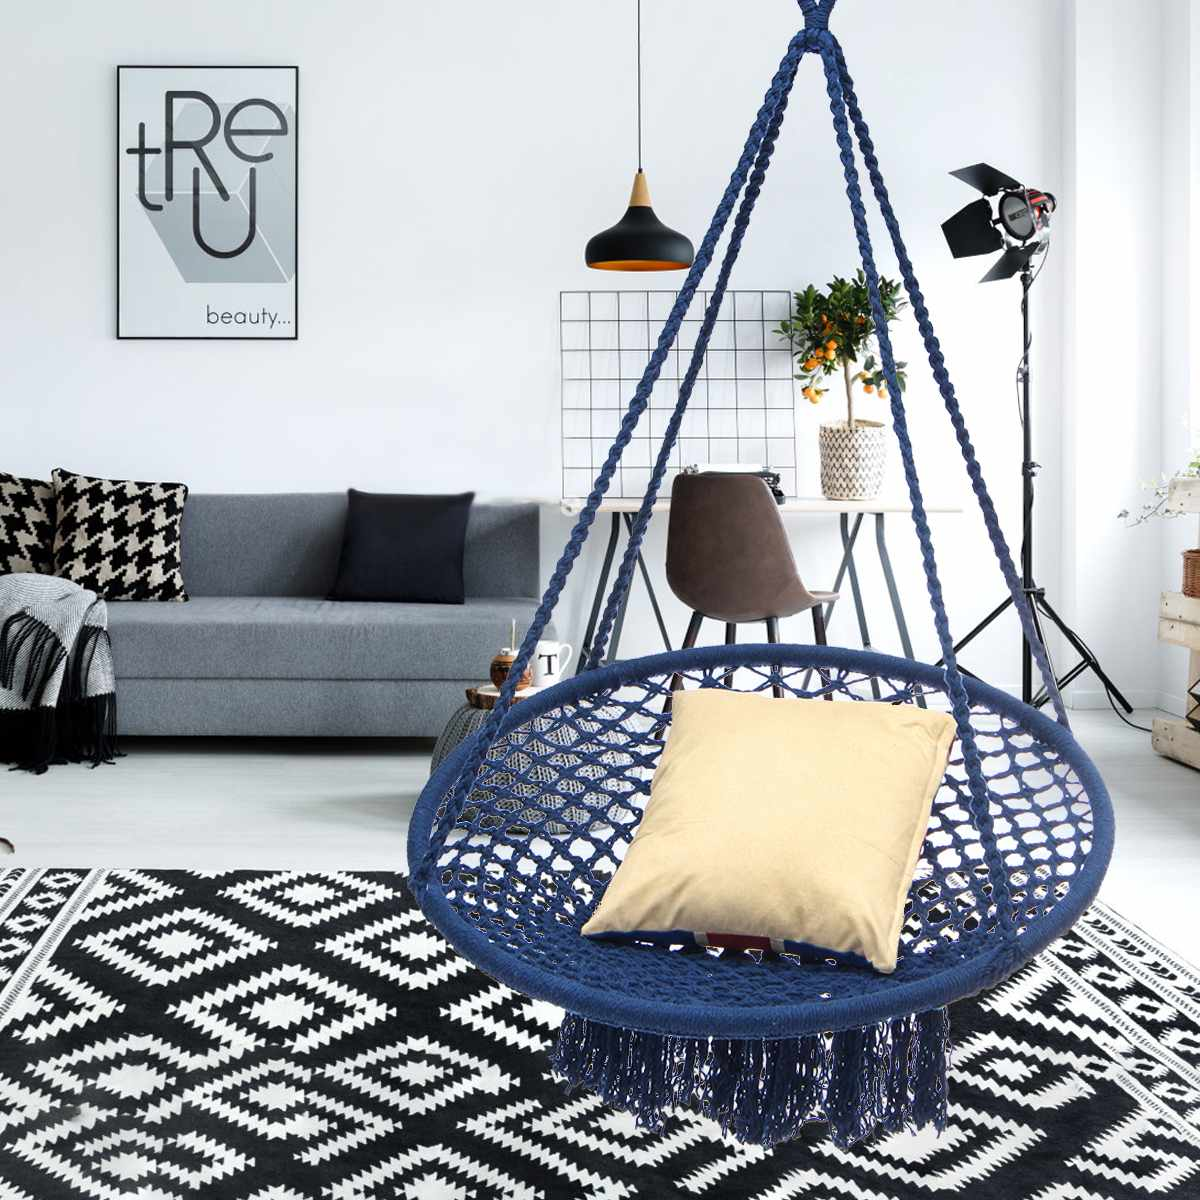 Rkbhc43 Remarkable Kids Bedroom Hanging Chairs Wtsenates